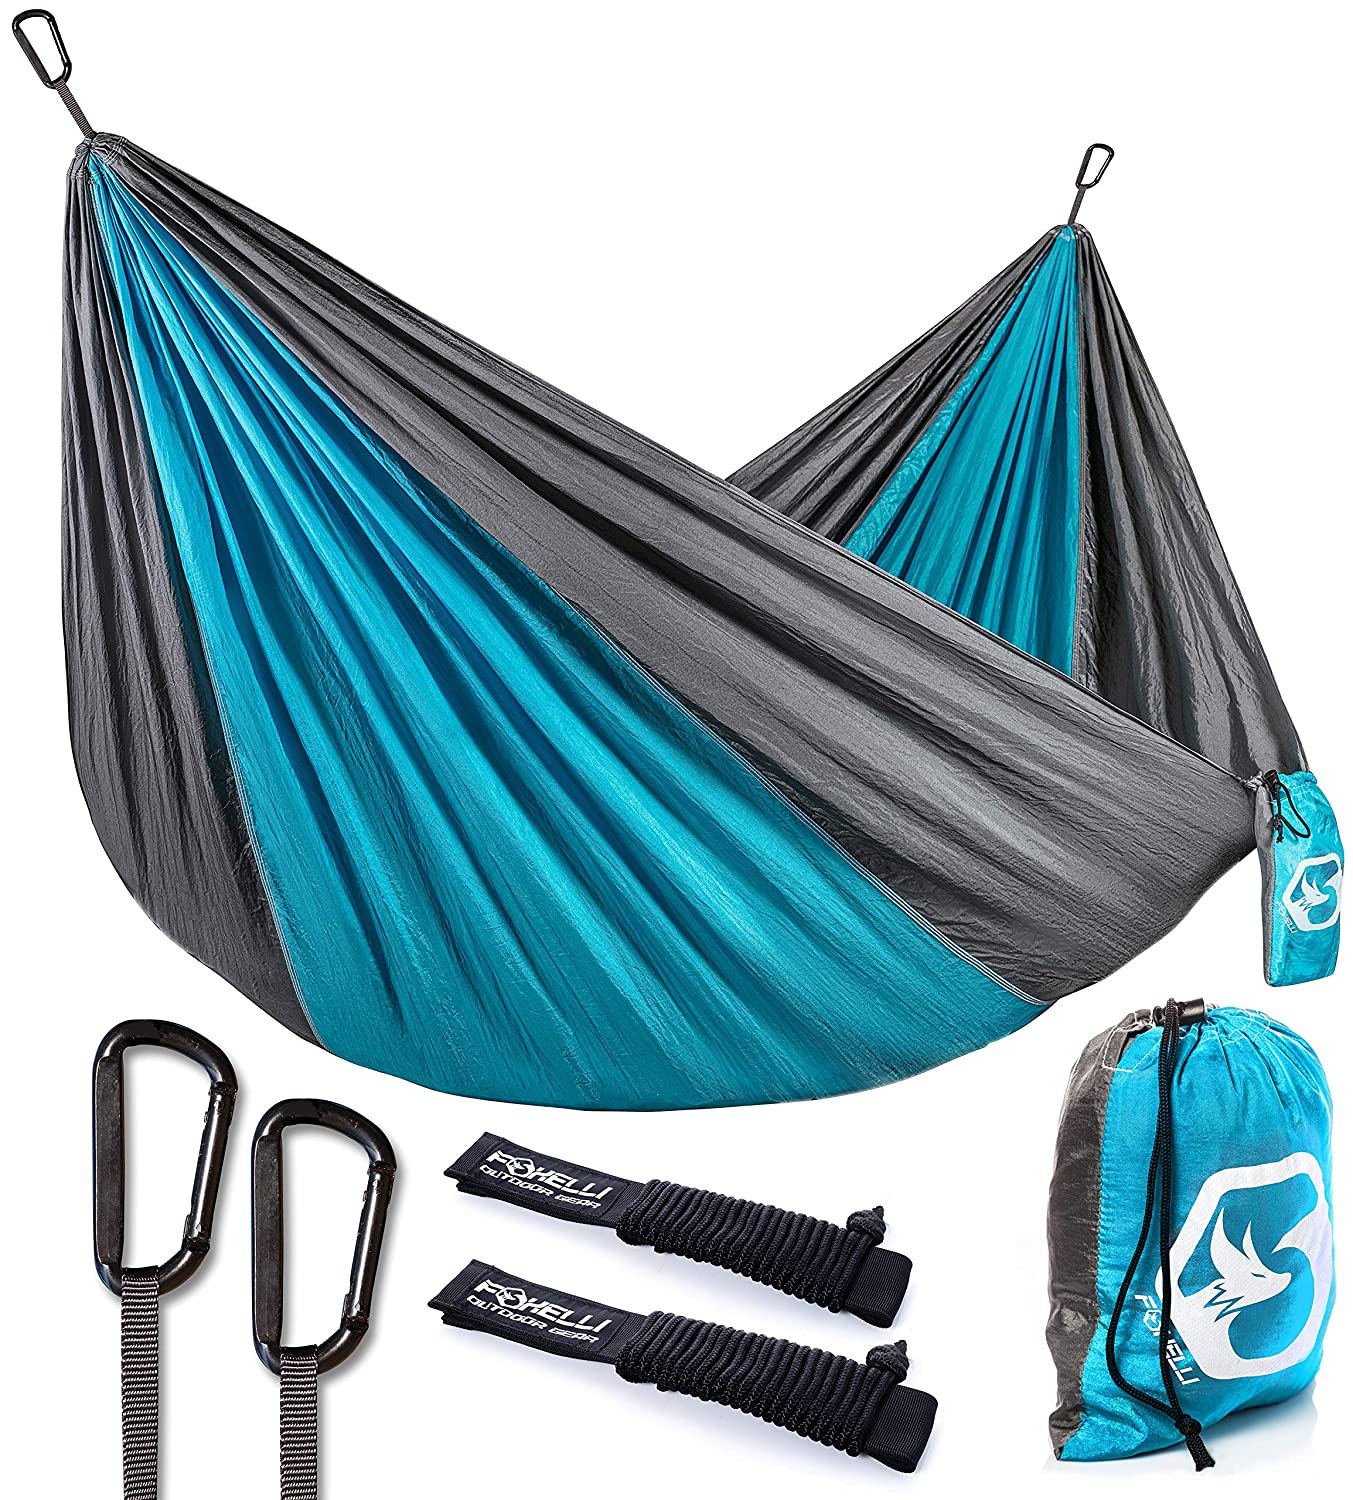 Foxelli Camping Hammock U2013 Lightweight Parachute Nylon Portable Hammock With  Tree Ropes And Carabiners, Perfect For Outdoors, Backpacking, Hiking,  Camping, ...